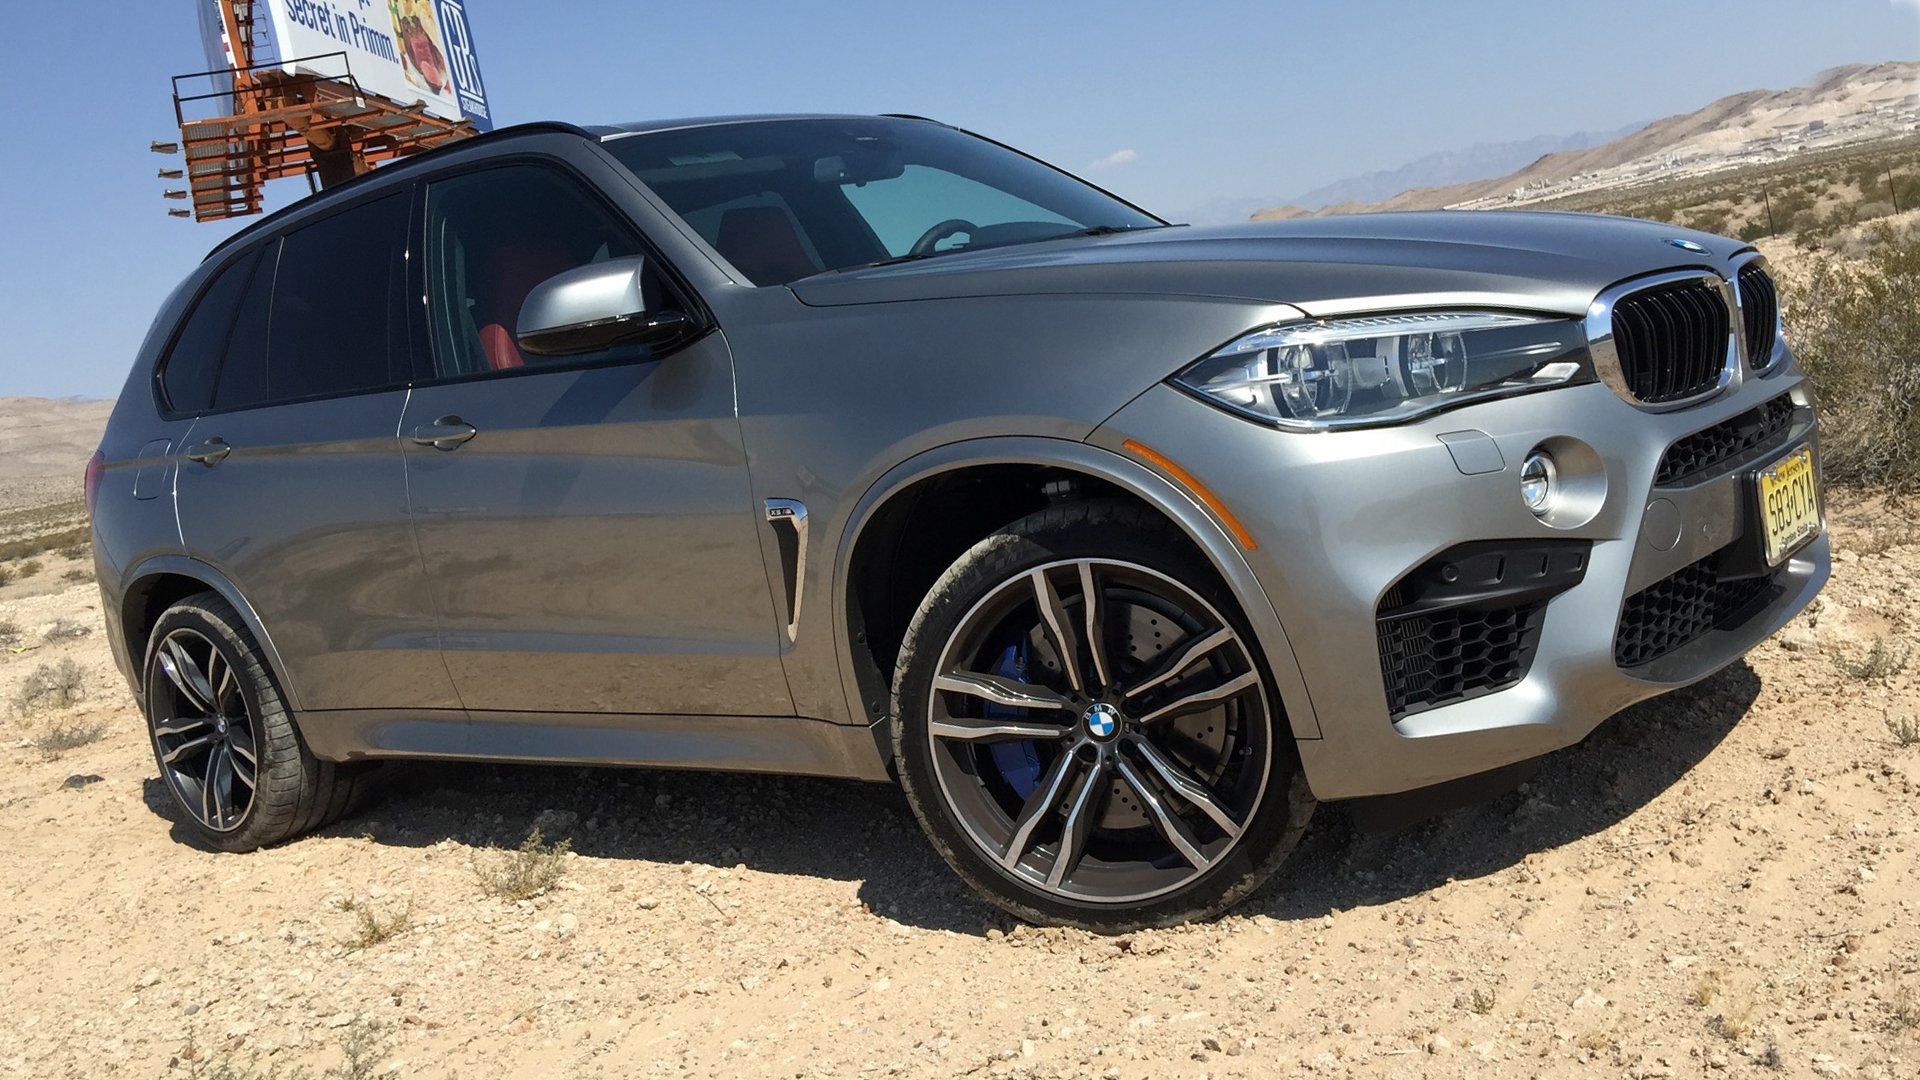 New 2019 BMW X5 Specs Features